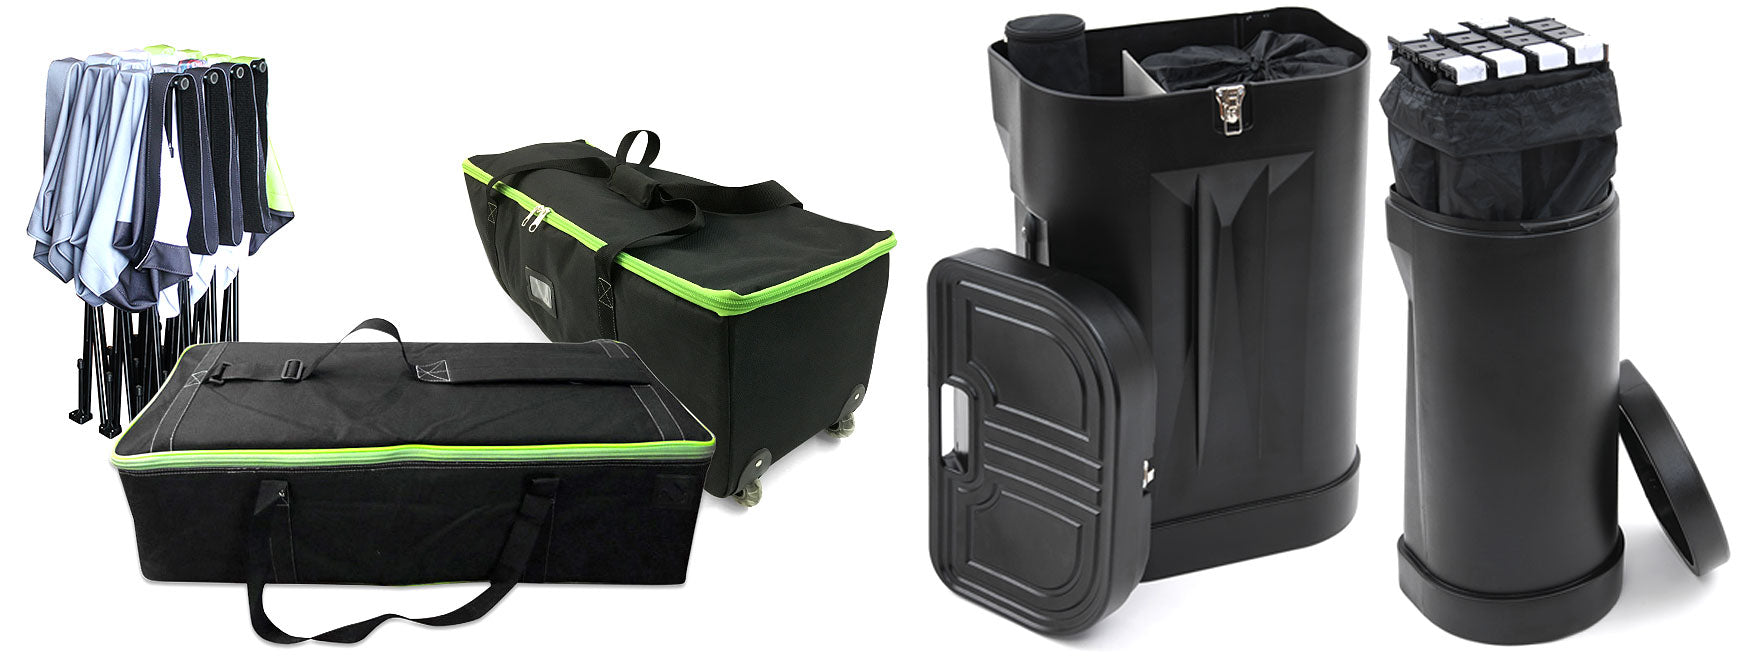 Xtension Squared Pop-Up Transport Solutions (Cases & Bags)